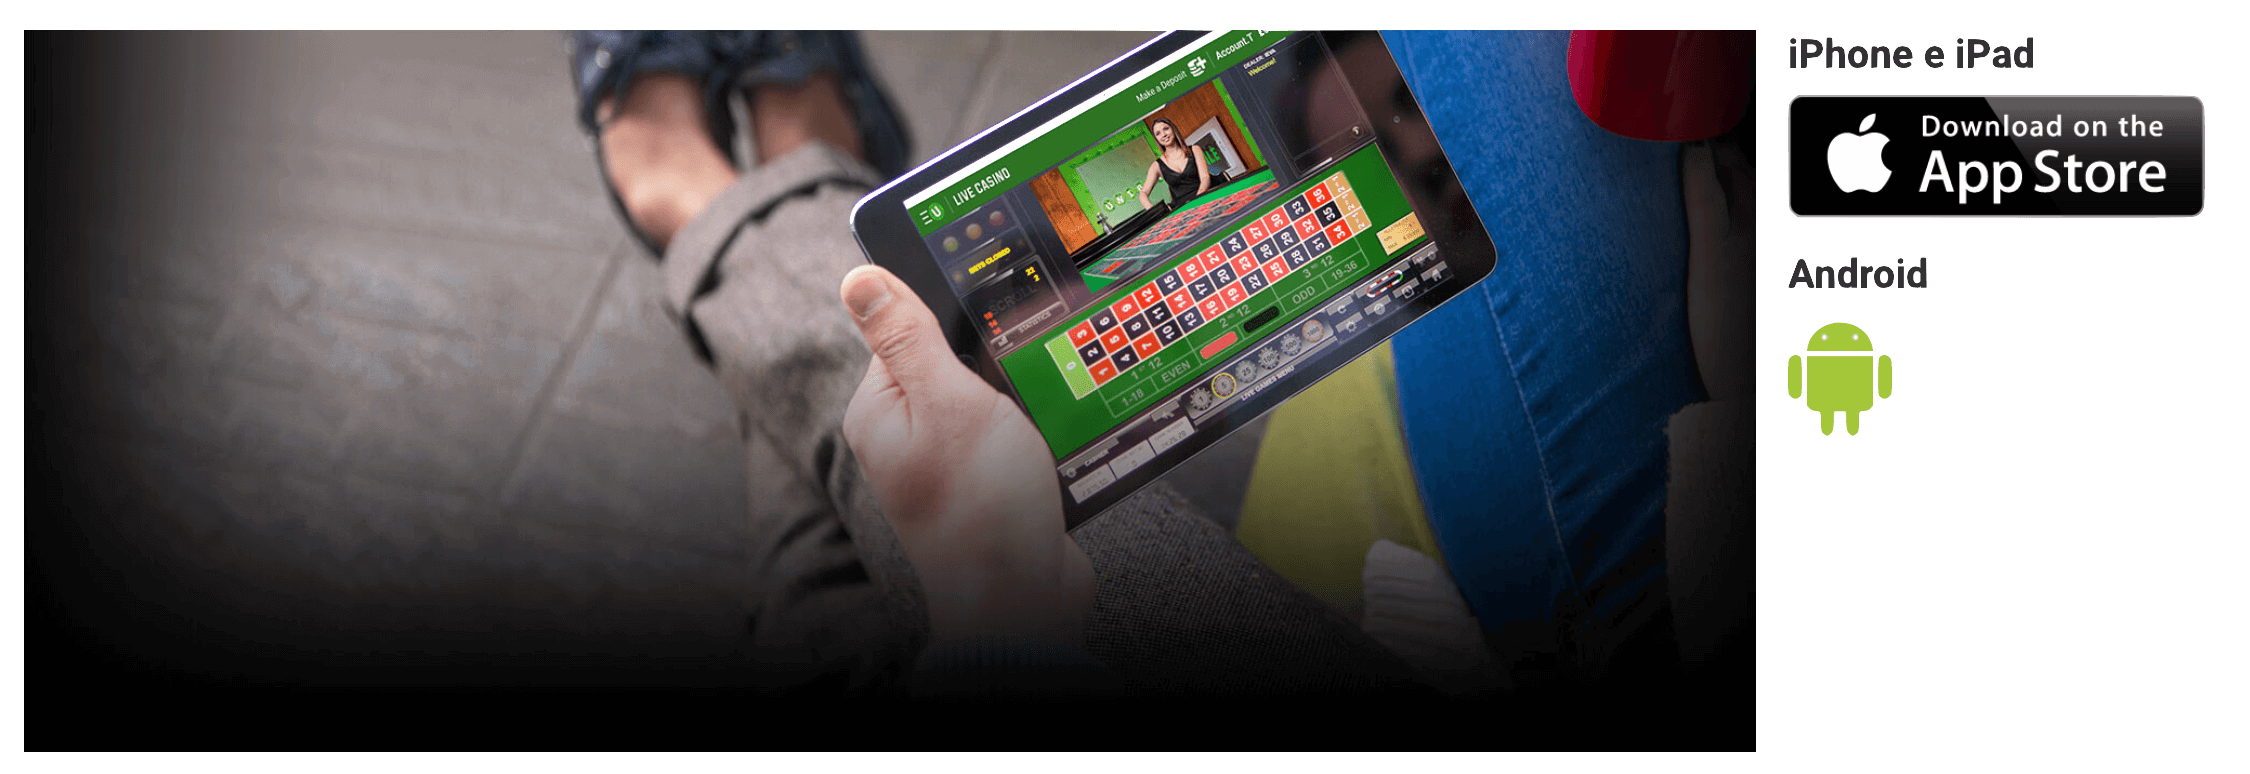 unibet mobile app casino download